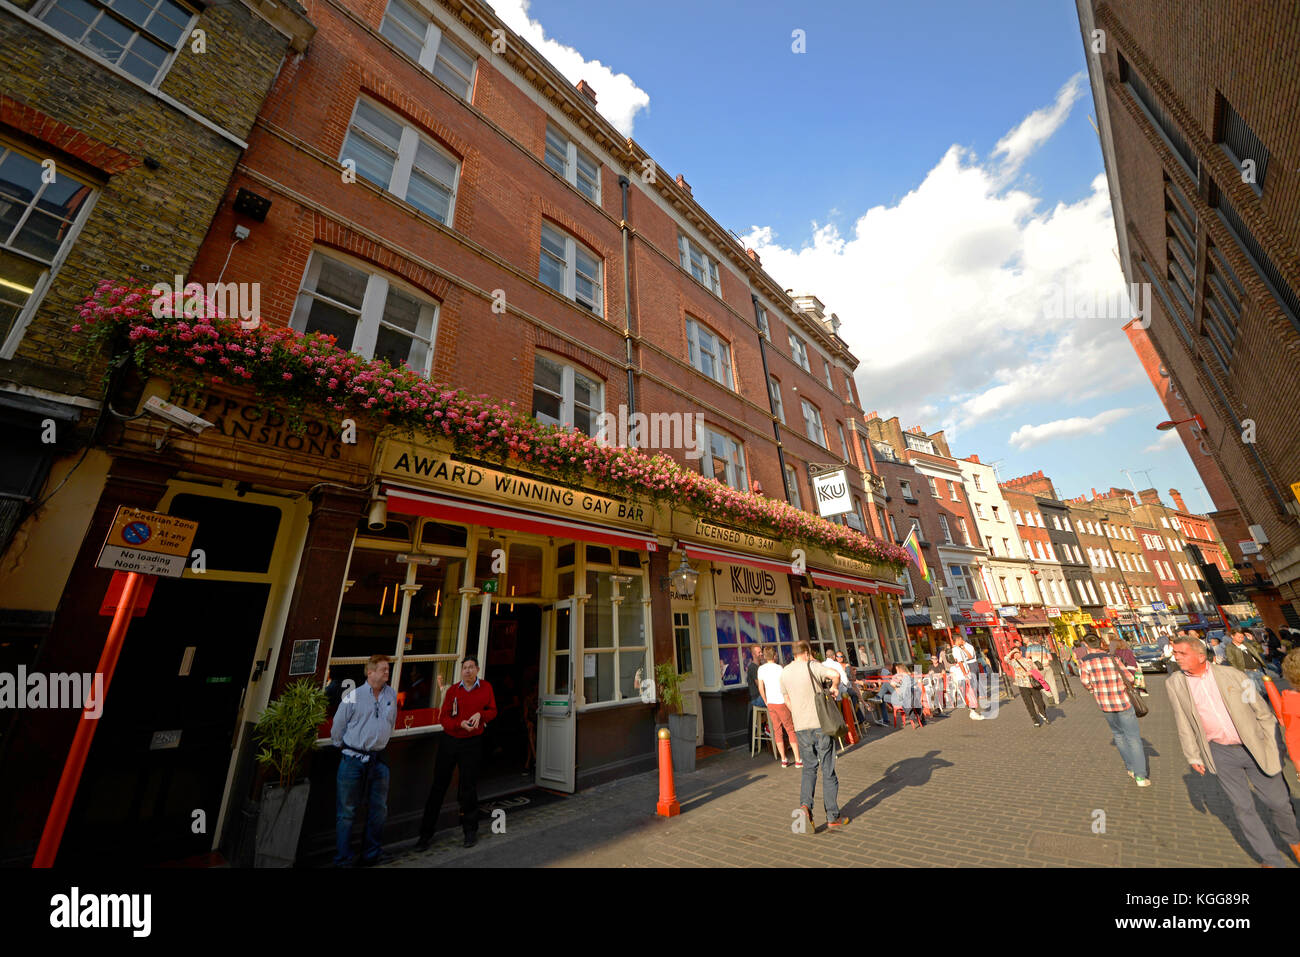 Ku Klub Bar is one of the largest gay bars in London. Leicester Square pub club. - Stock Image